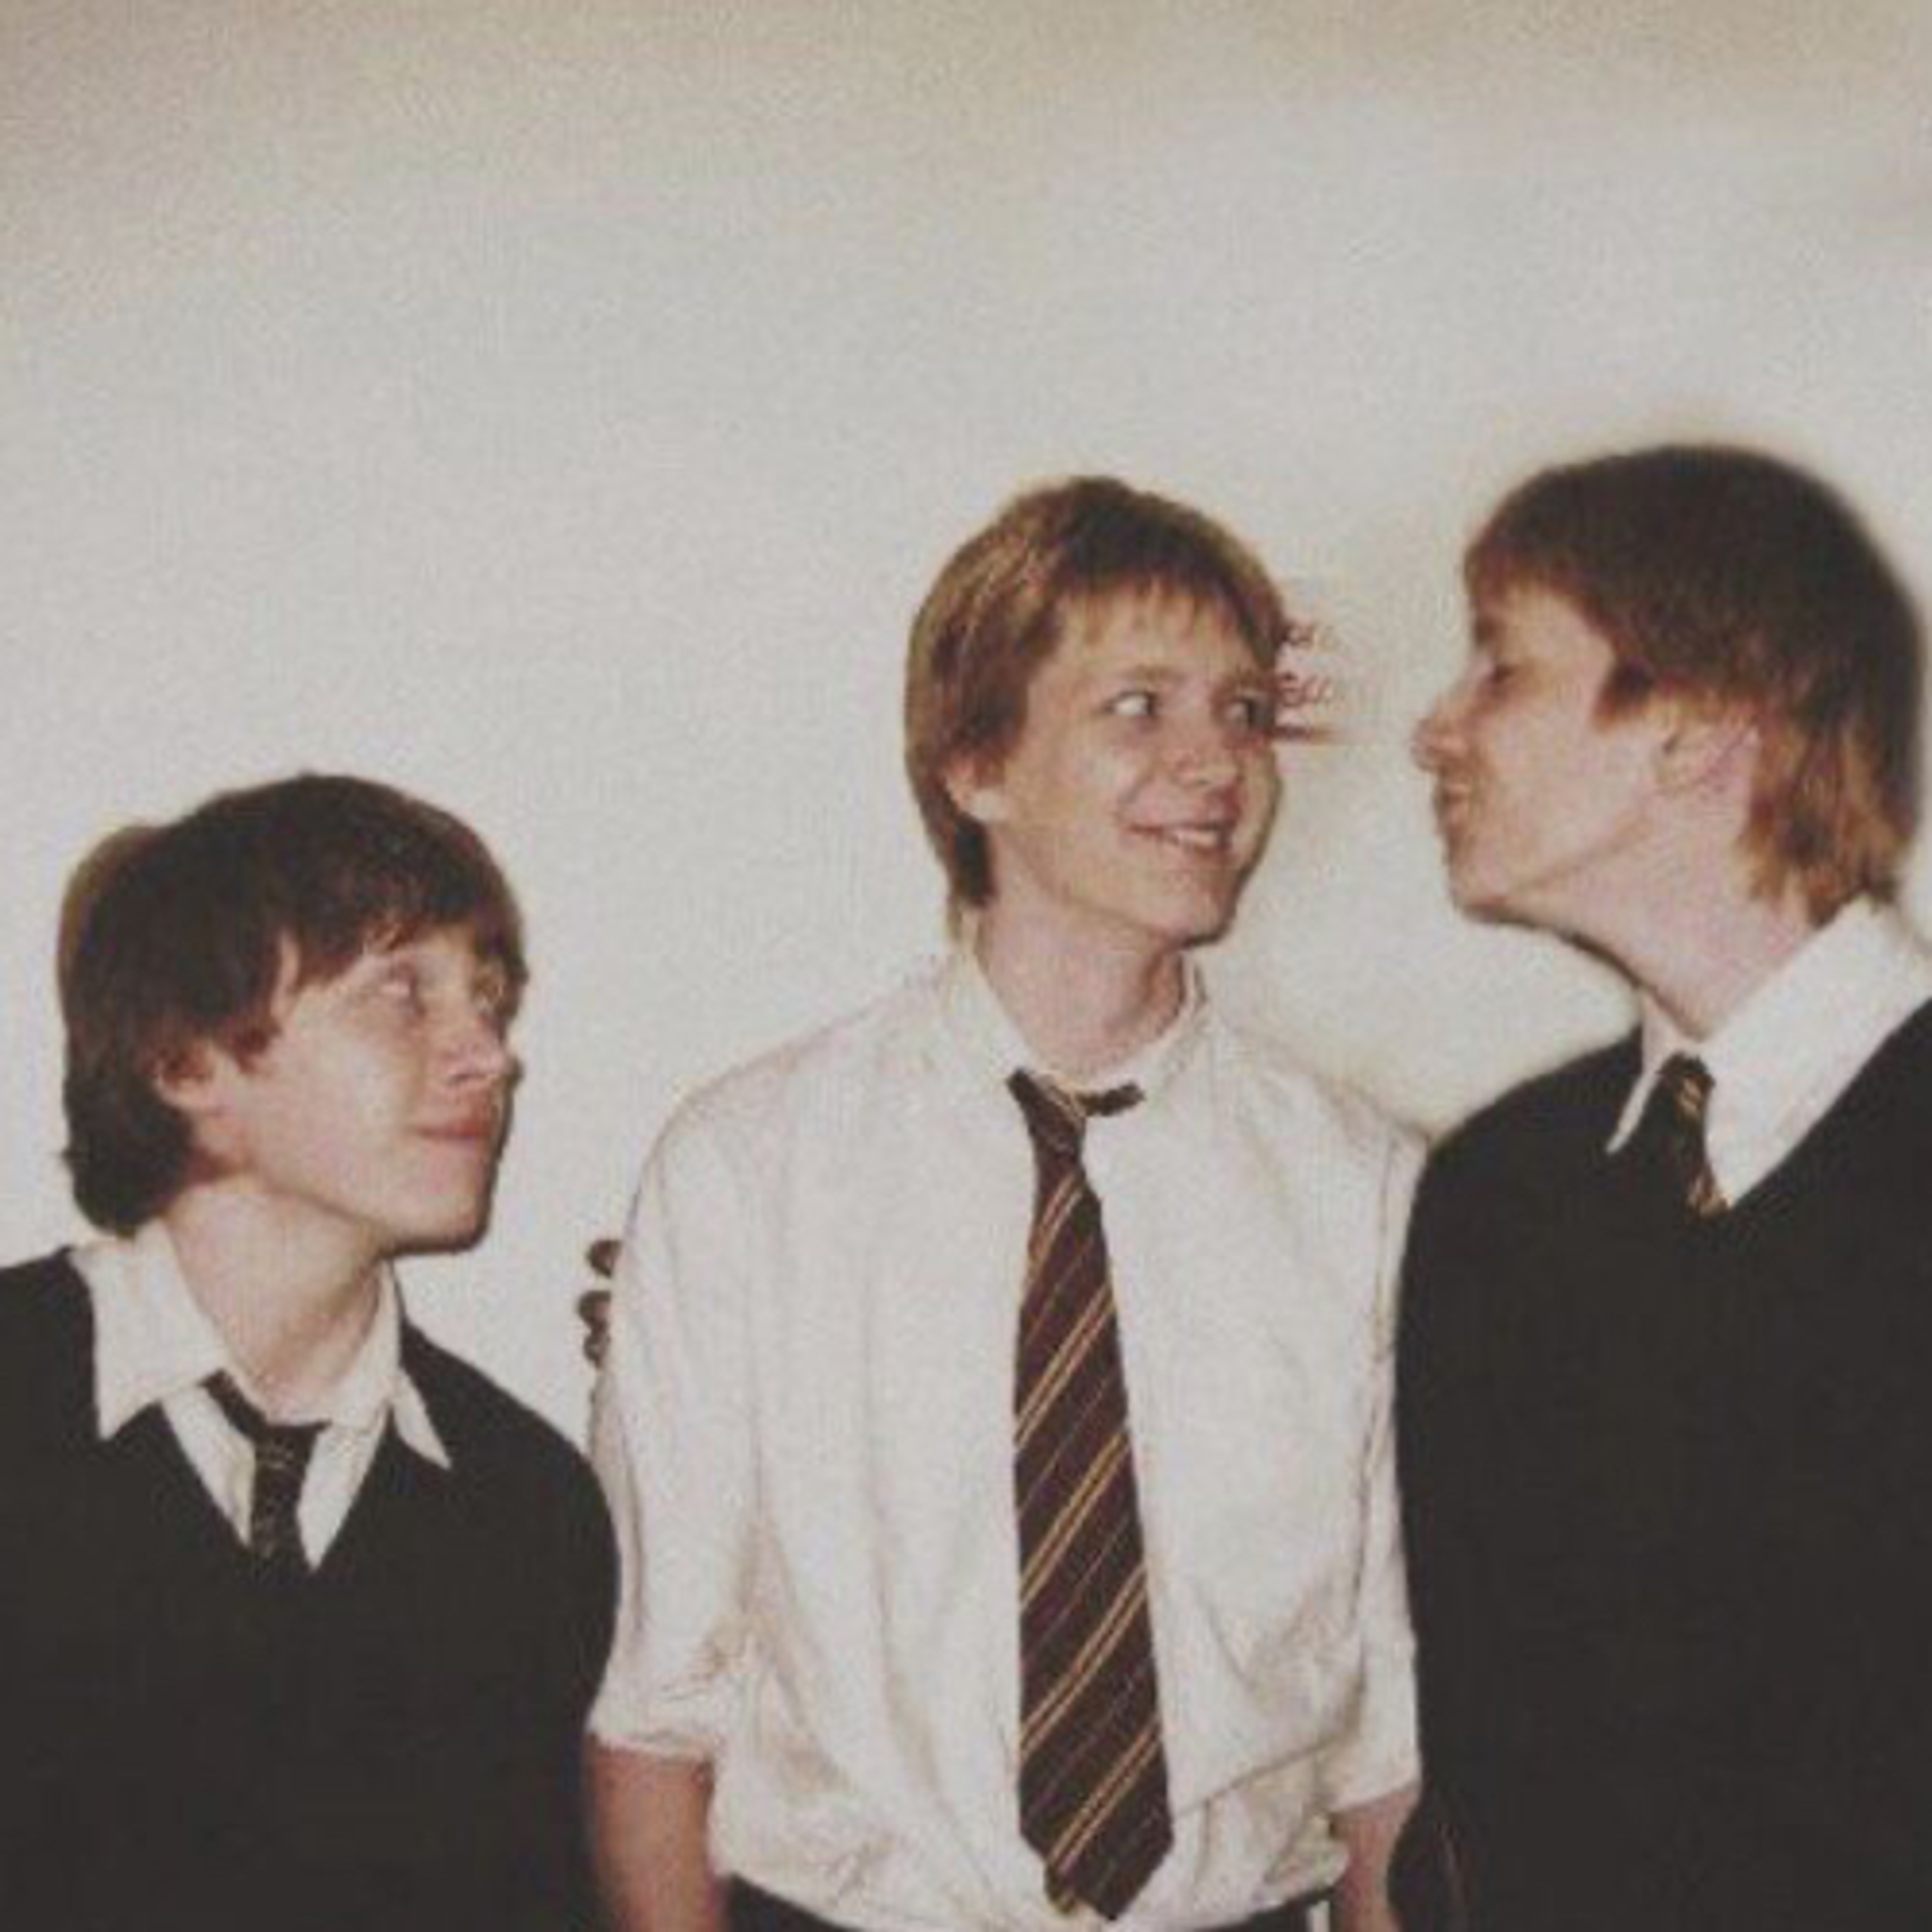 fred and george try to keep quiet while you sleep.